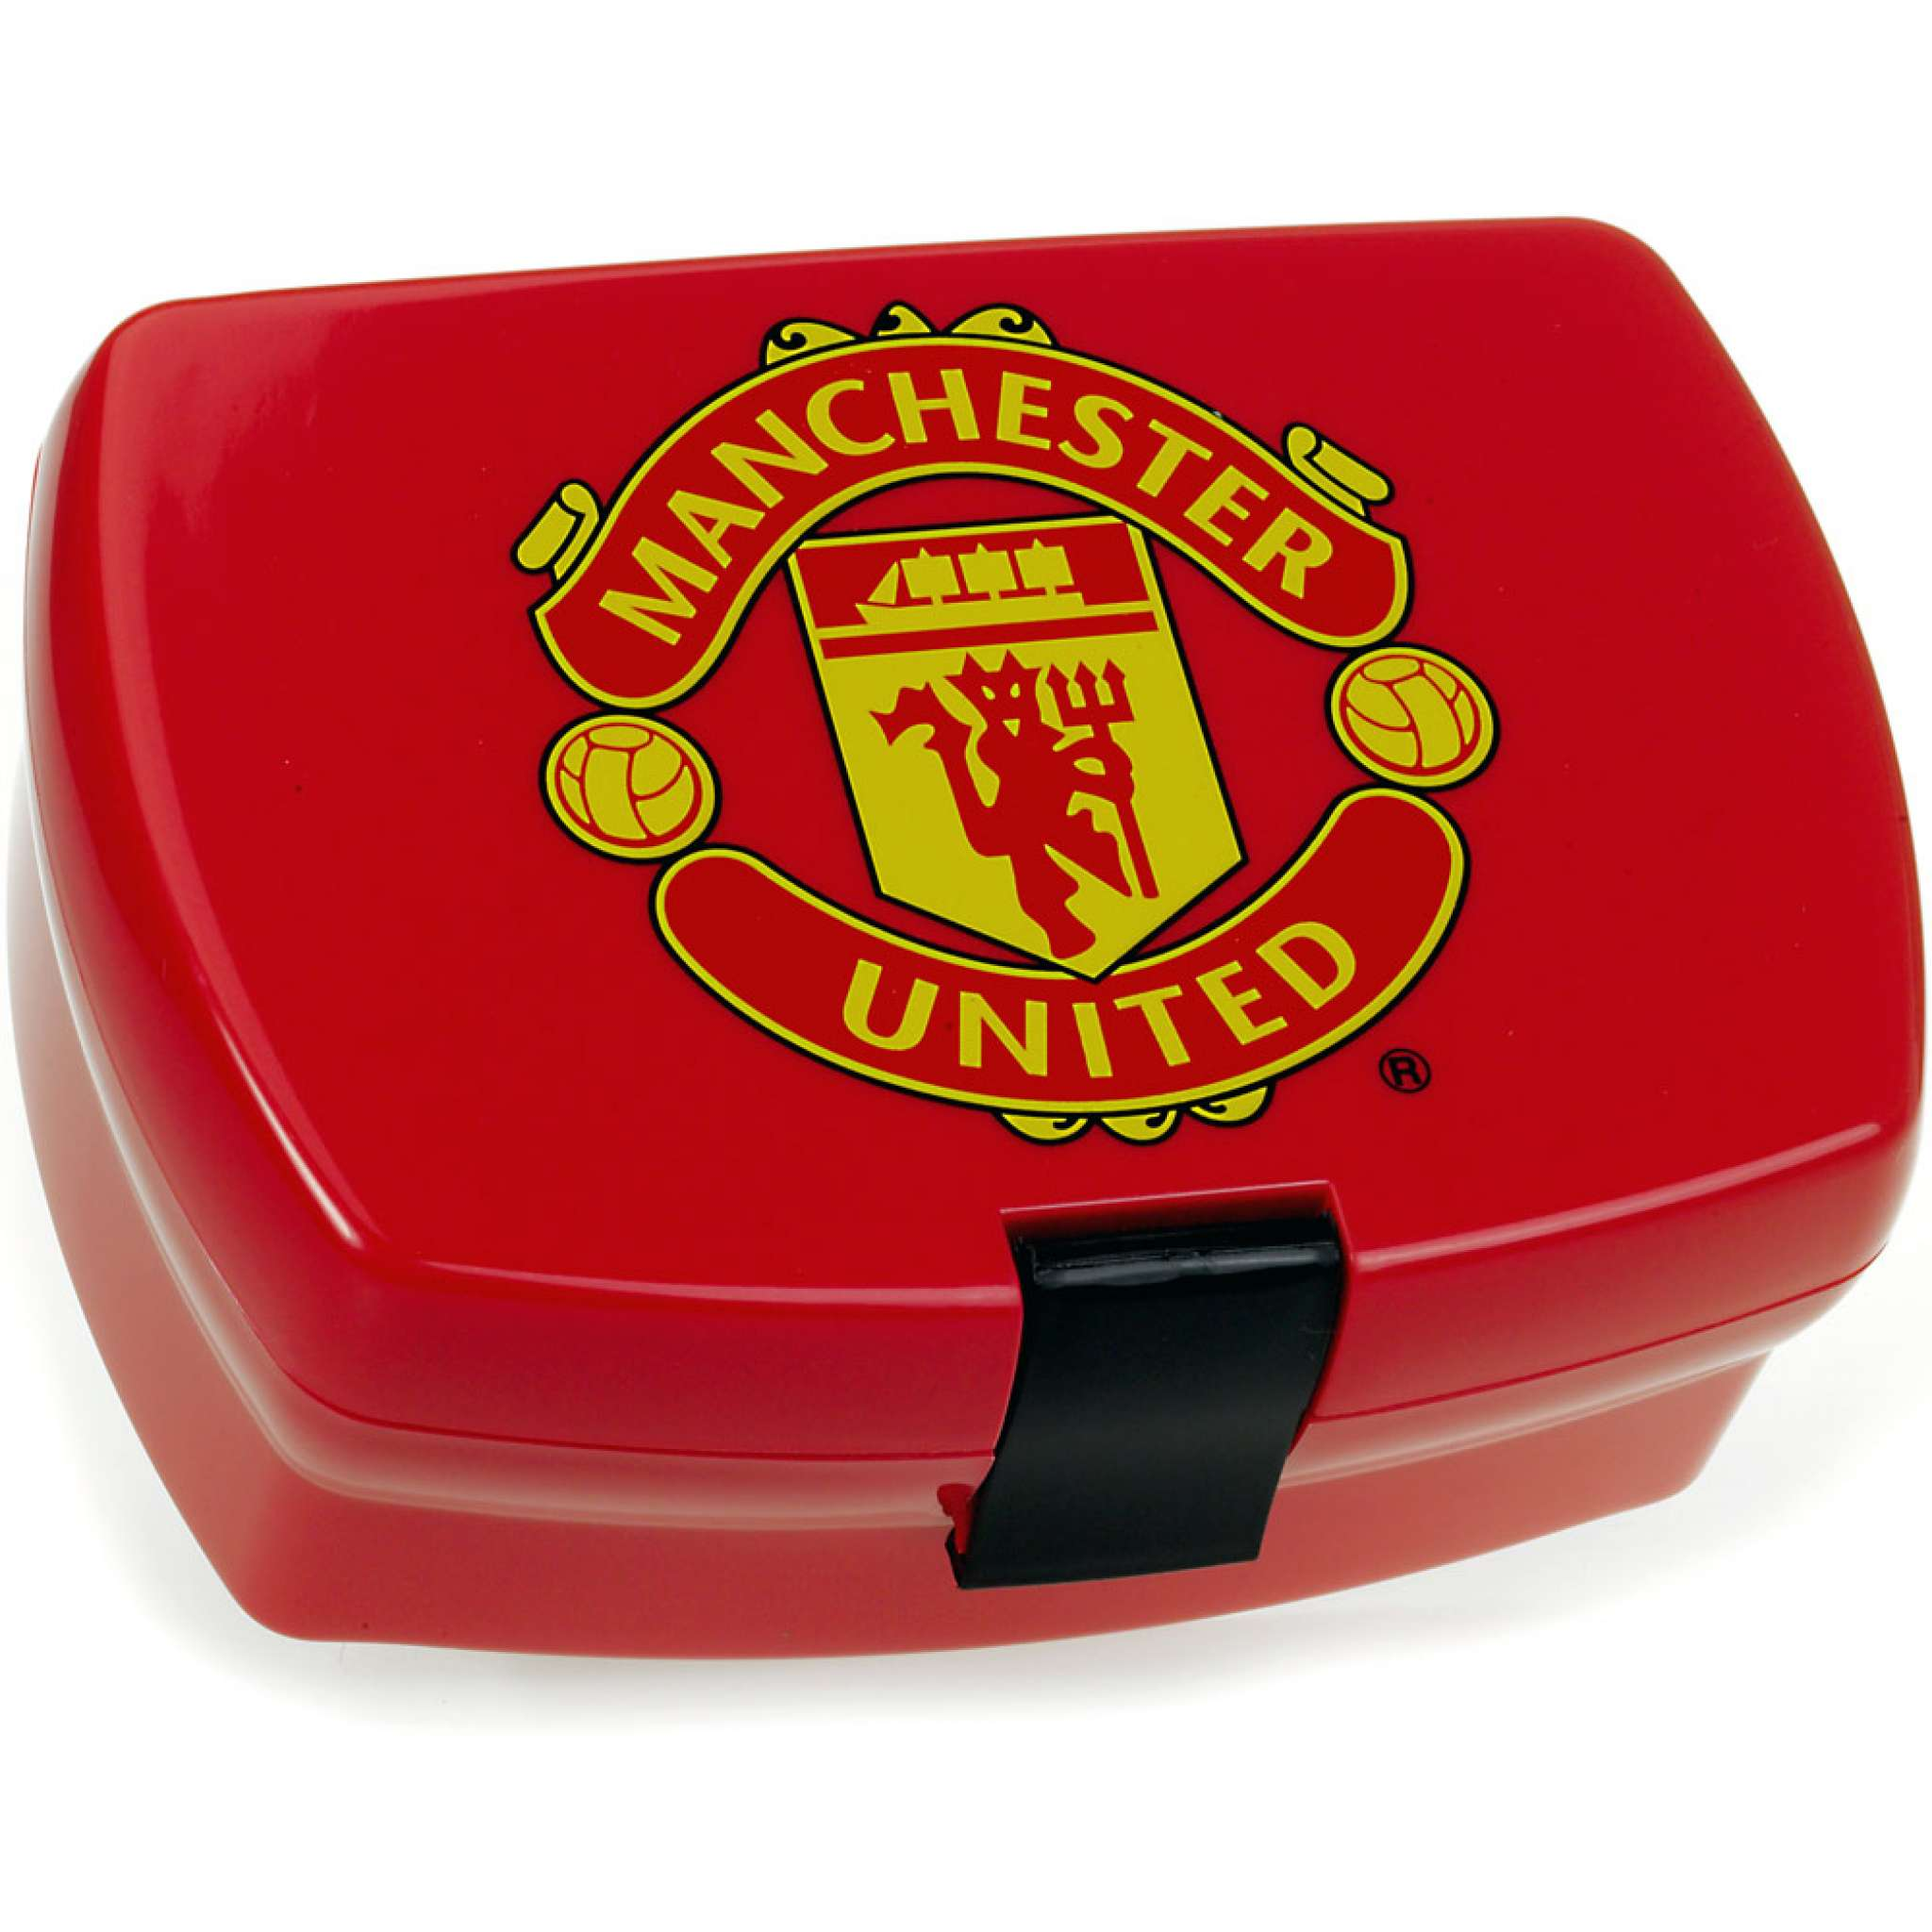 Lunchbox Manchester United